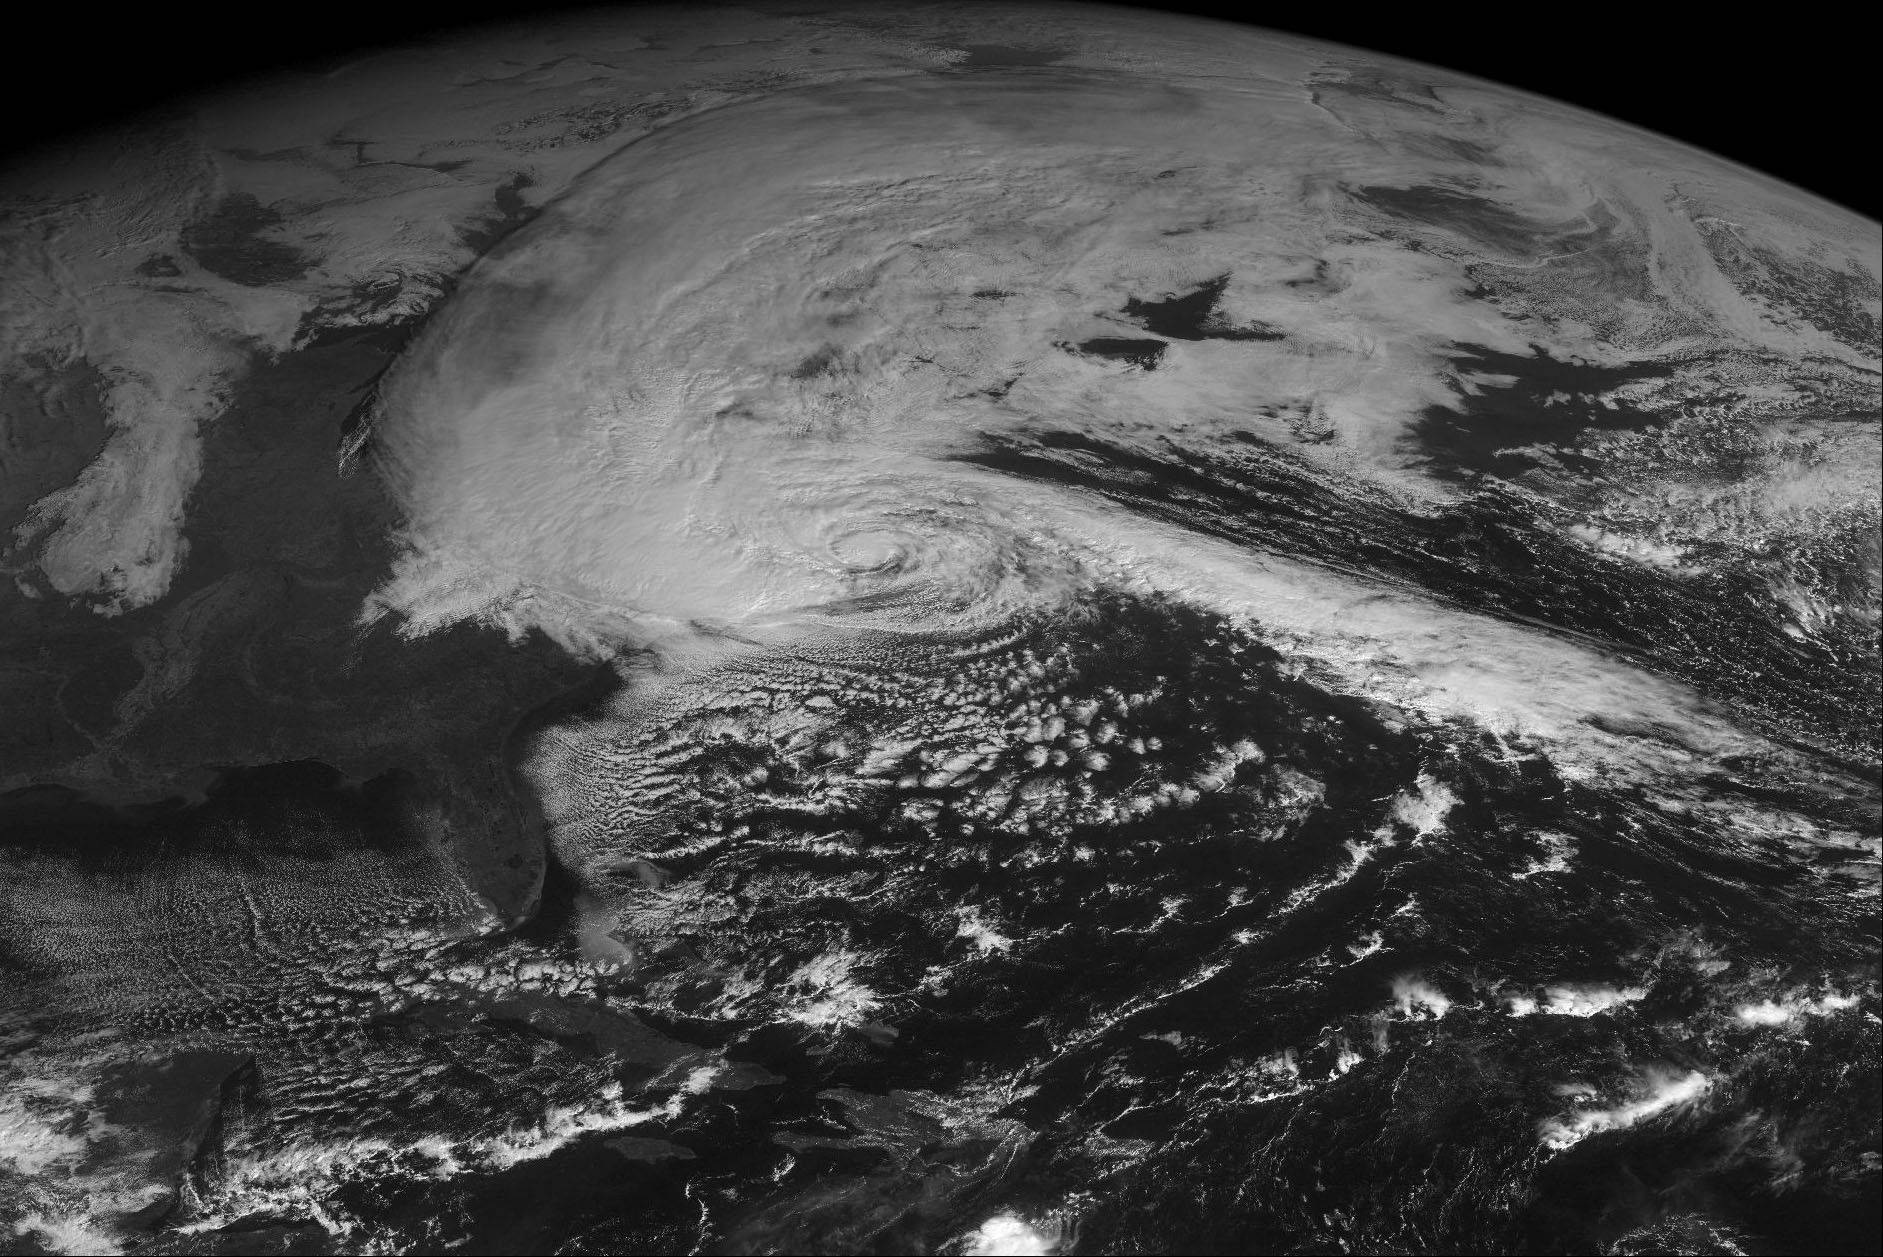 This NOAA satellite image taken Monday, Oct. 29, at 10:45 AM EDT shows Hurricane Sandy approaching the Mid-Atlantic region with clouds extending across much of the Northeast quarter of the U.S. with heavy rains from the Mid-Atlantic to the Ohio Valley and Great Lakes and snow falling in the southern portions of West Virginia. Cloudiness and rain showers can be found across the Upper and Mid Mississippi Valleys.